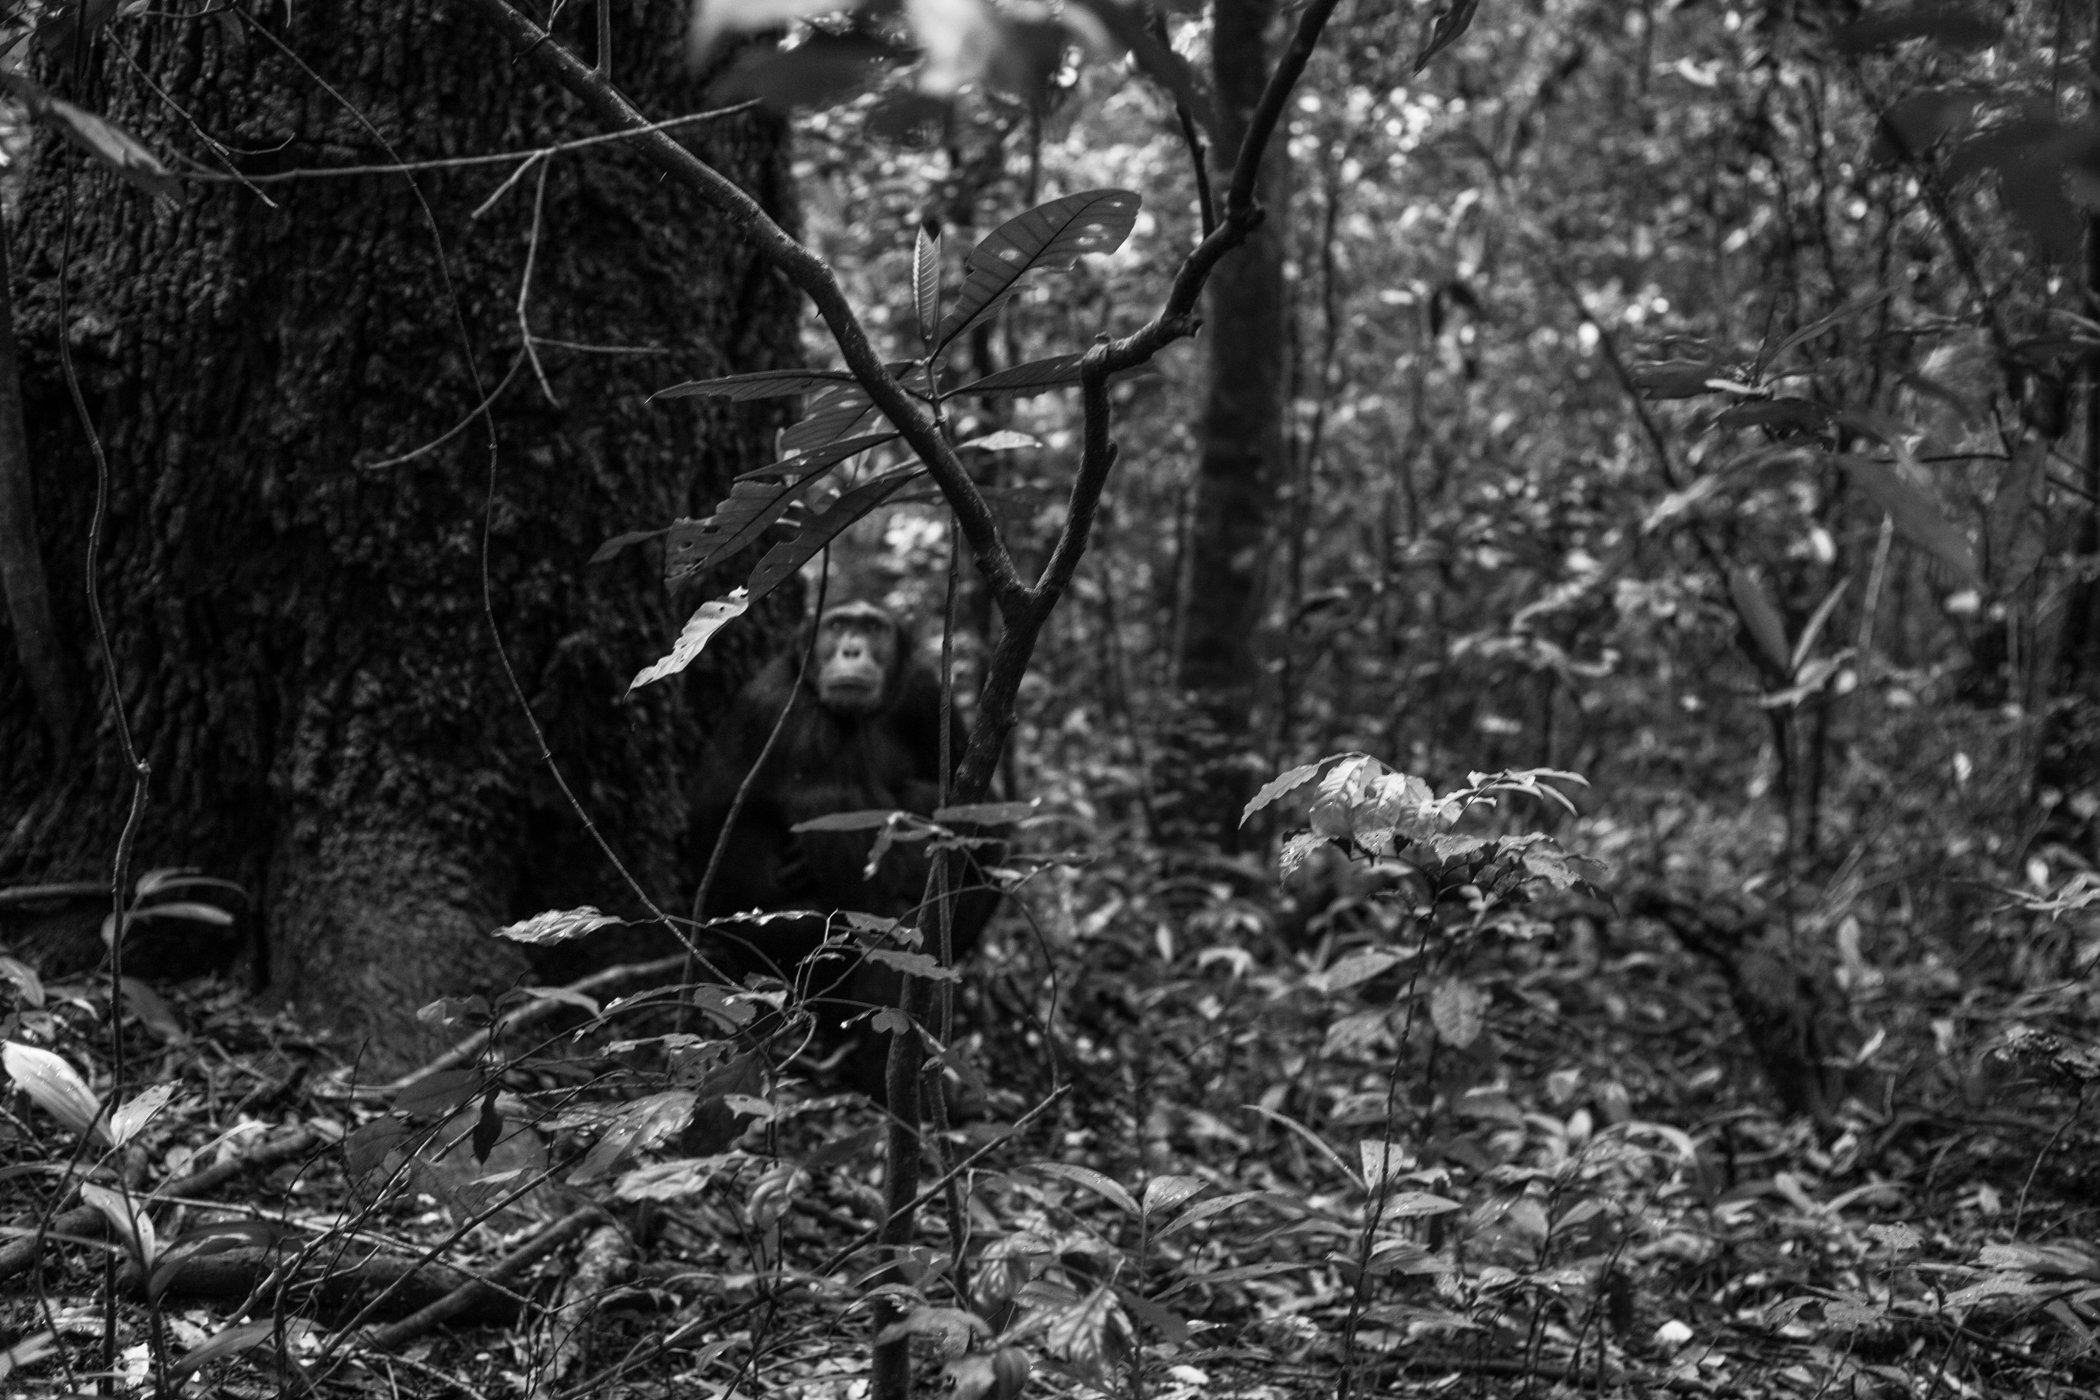 Chimp_Forest_Uganda-IMG_1315-untitled.jpg